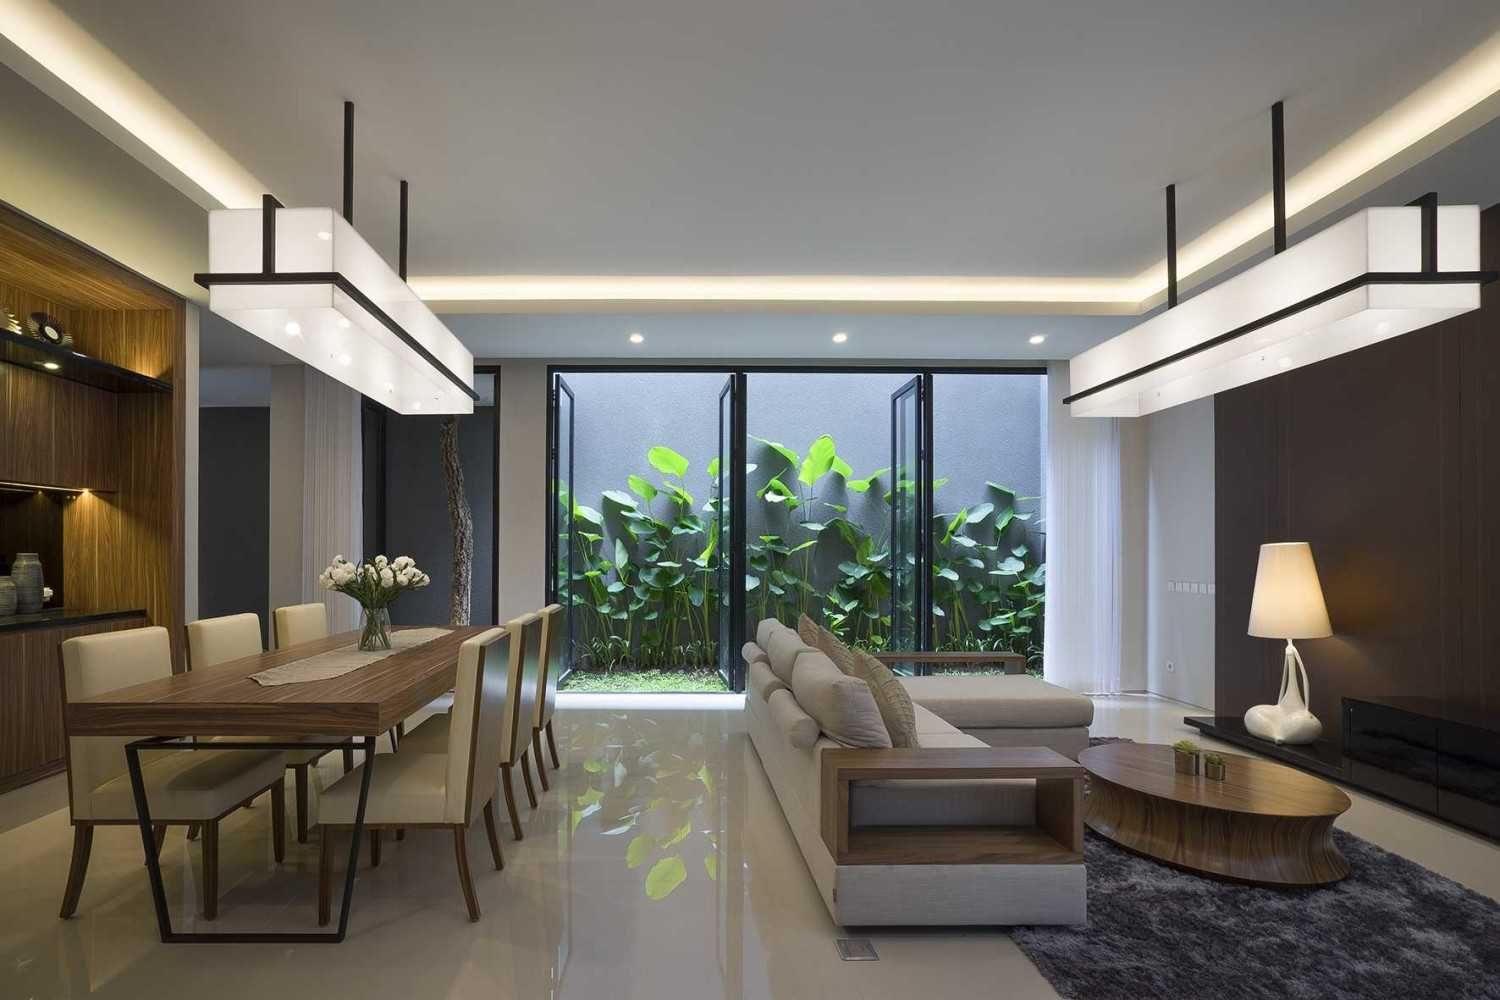 """Simple Projects Architecture """"s"""" House Pakuwon Indah, Surabaya - Indonesia Pakuwon Indah, Surabaya - Indonesia Living & Dining Room  32996"""